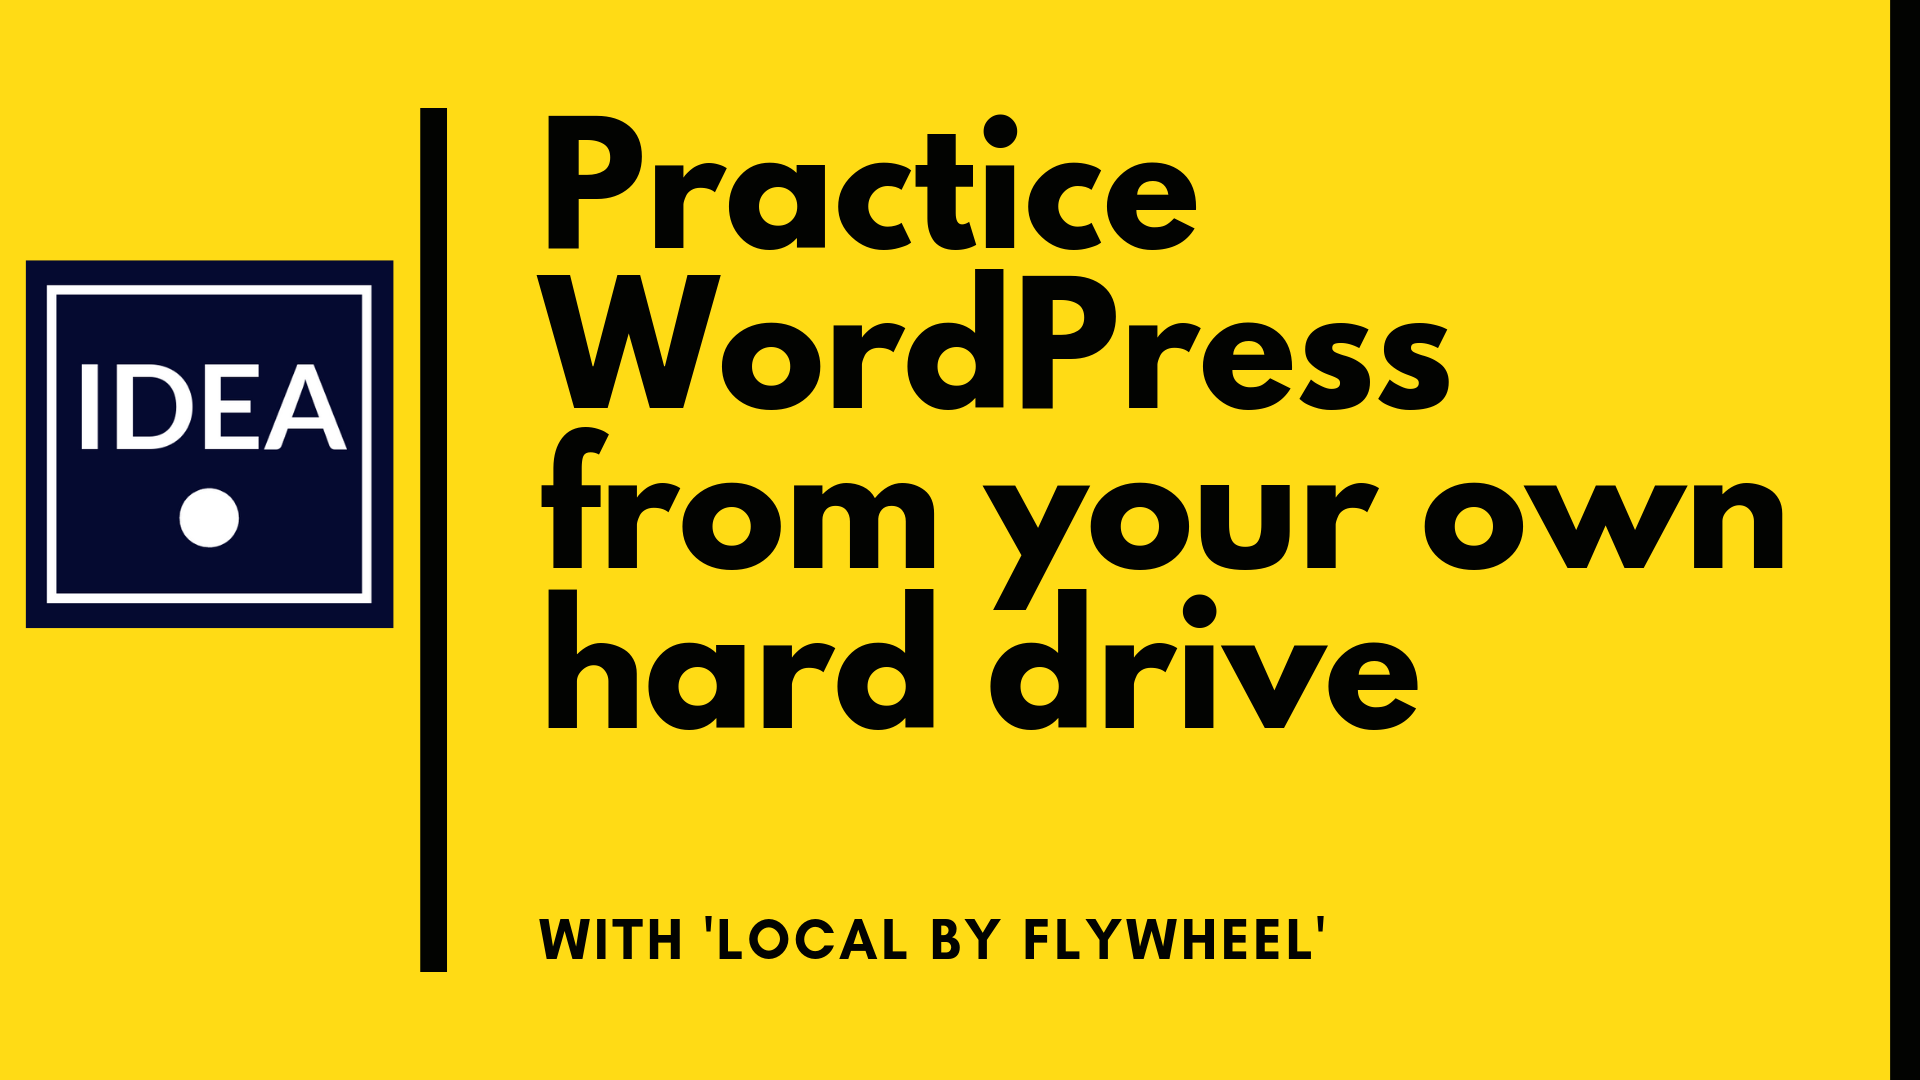 practice wordpress from your hard drive - local by flywheel